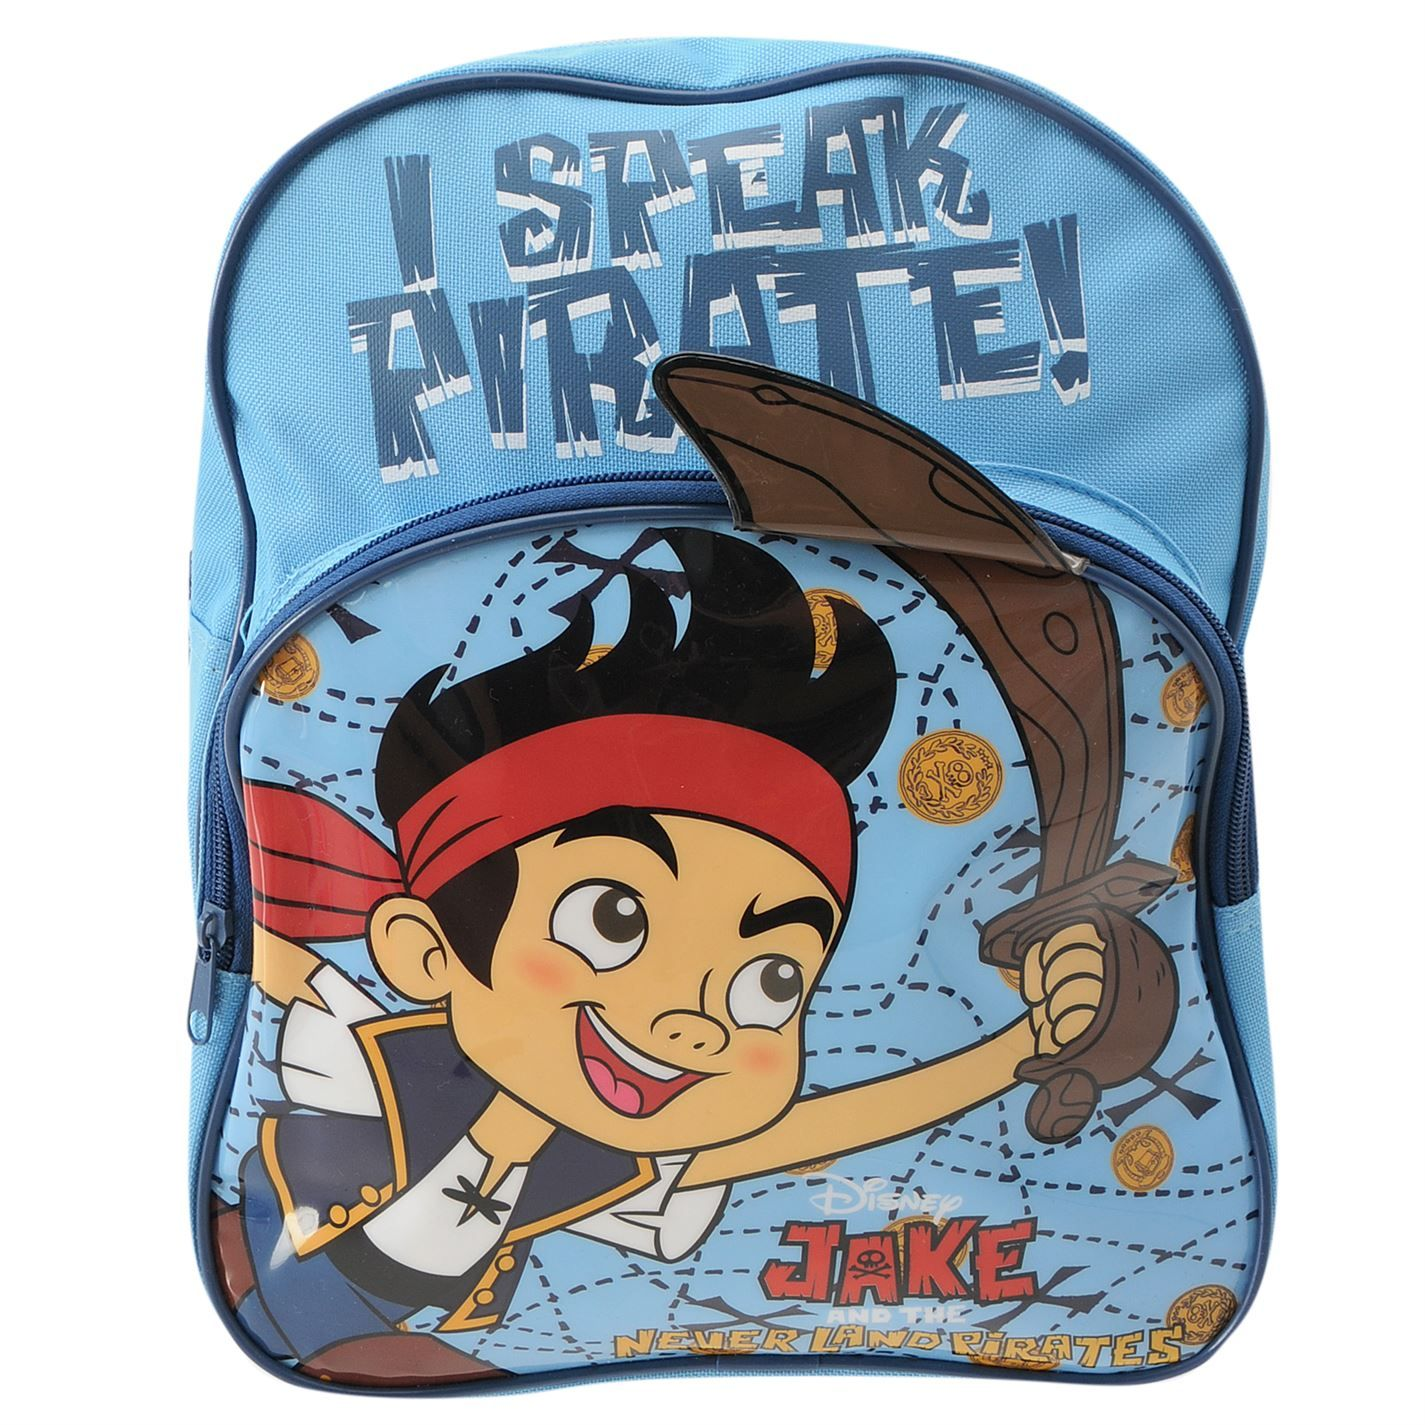 Character Kids Junior Pocket Rucksack Backpack Spotted Zips Colourful